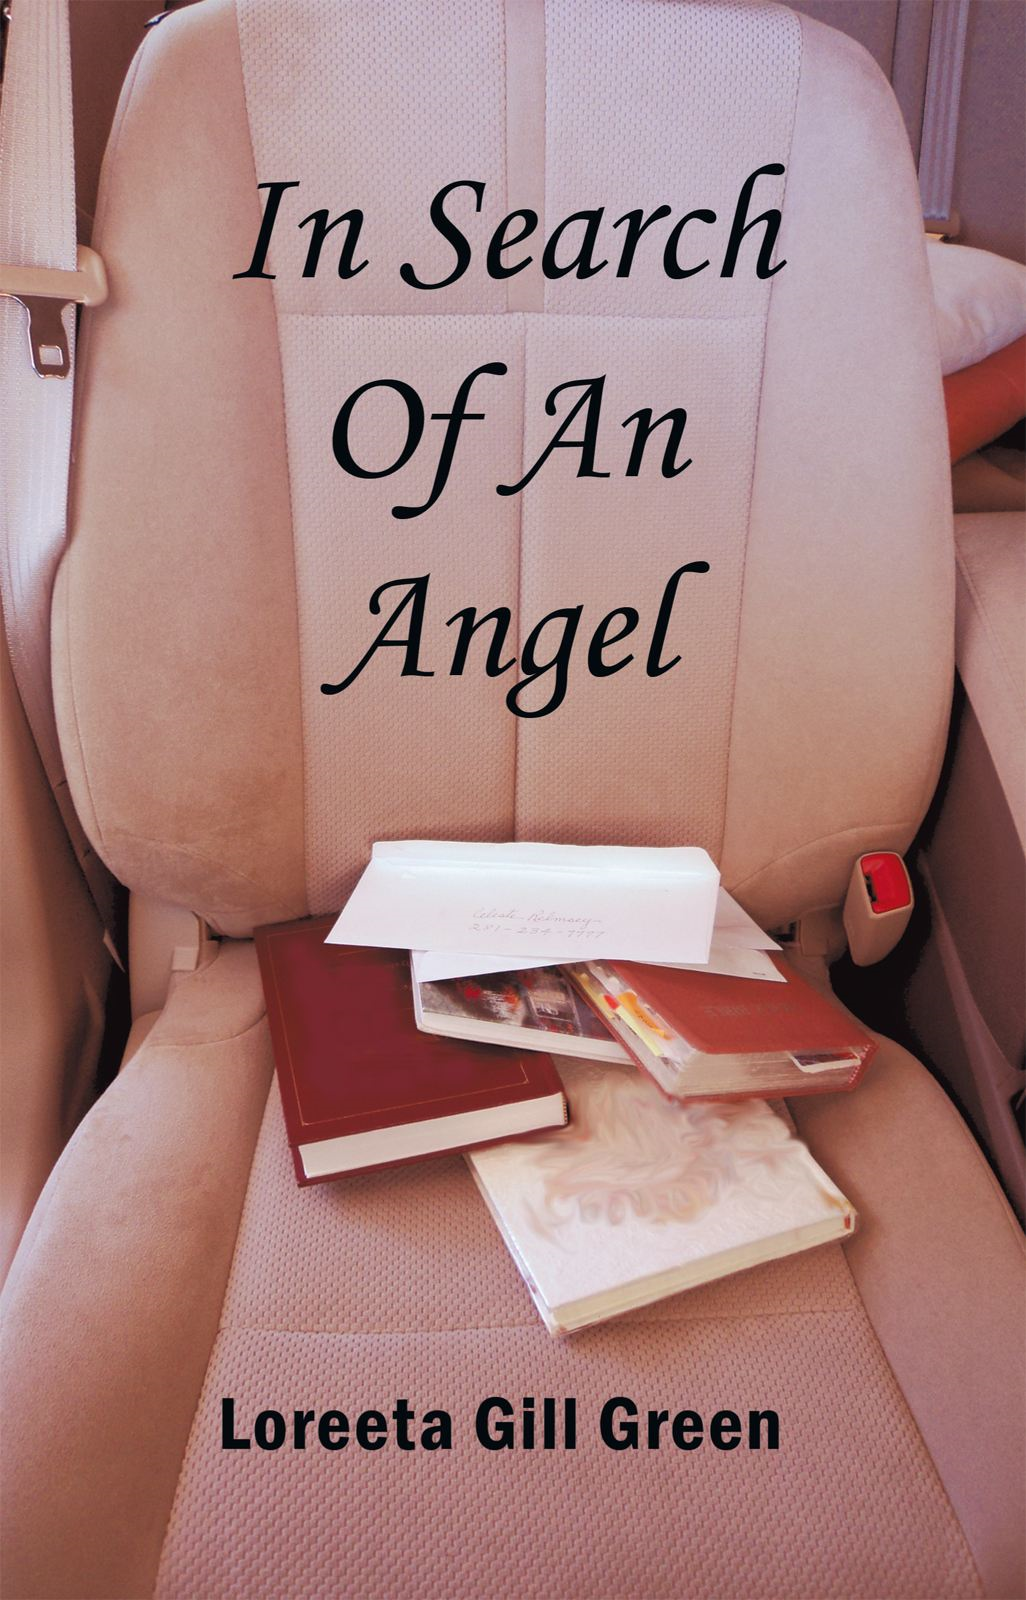 In Search Of An Angel